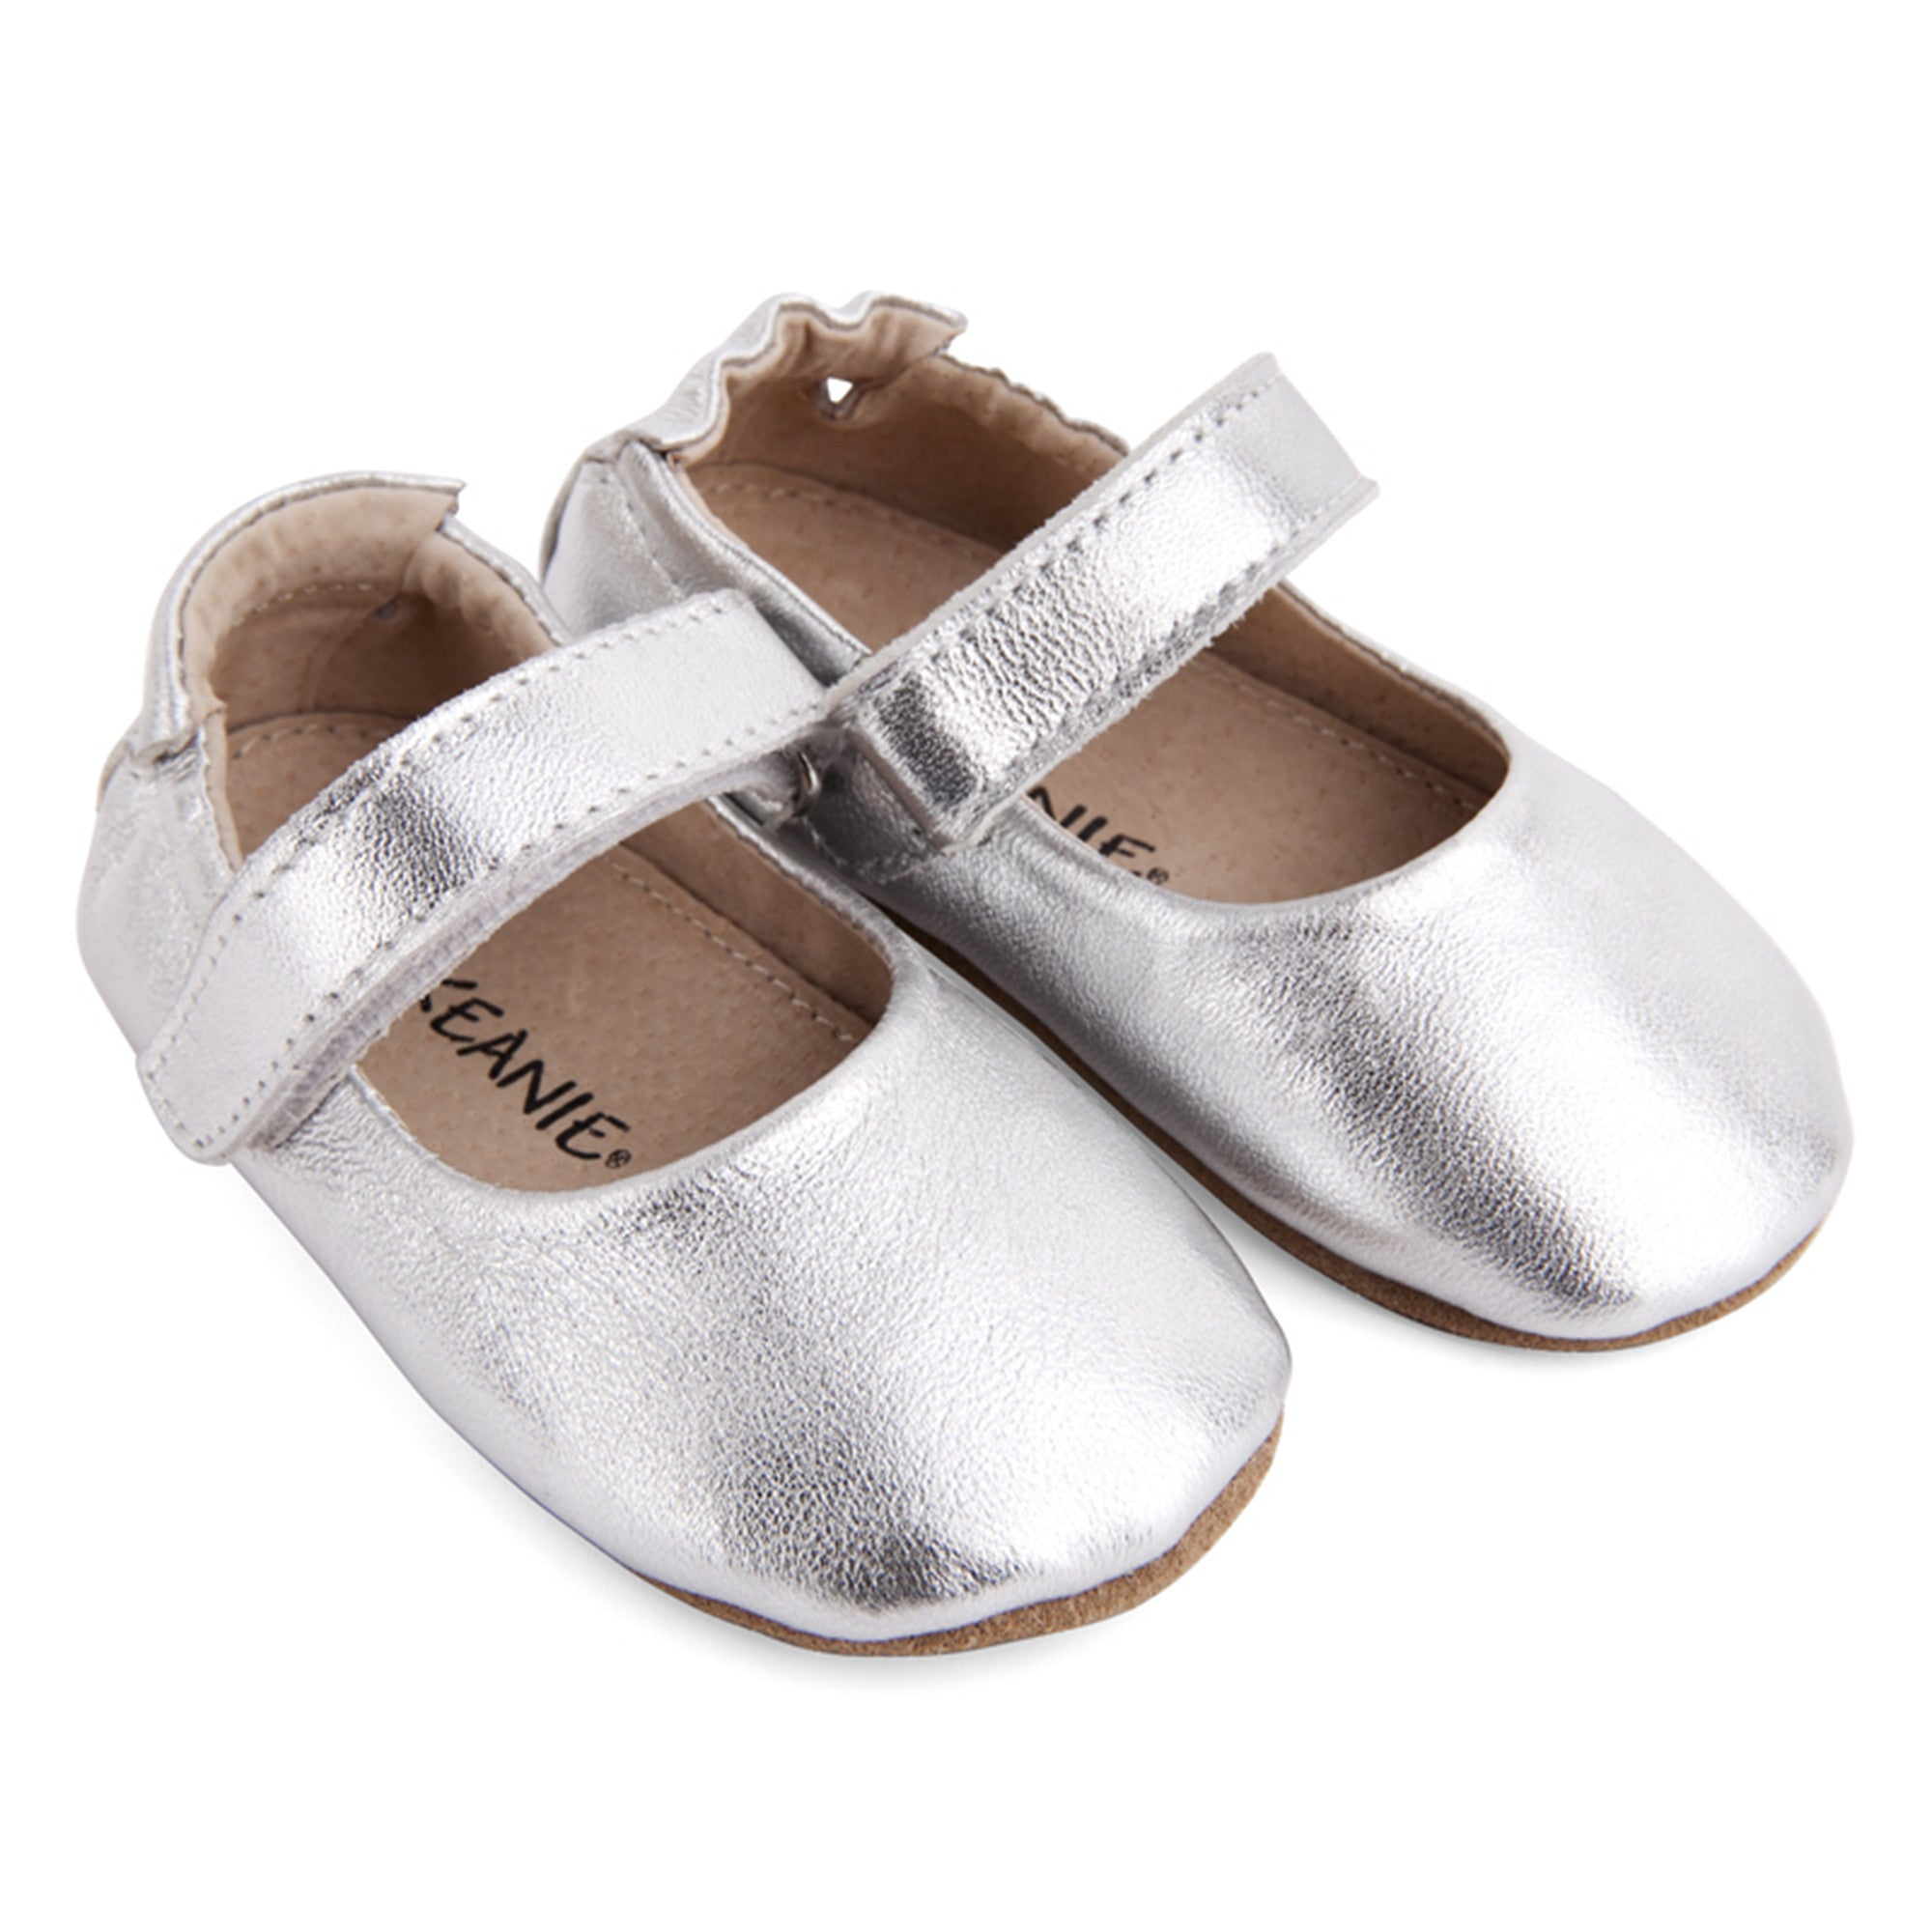 Skeanie Lady Jane Skeanie Shoes S / Silver at Little Earth Nest Eco Shop